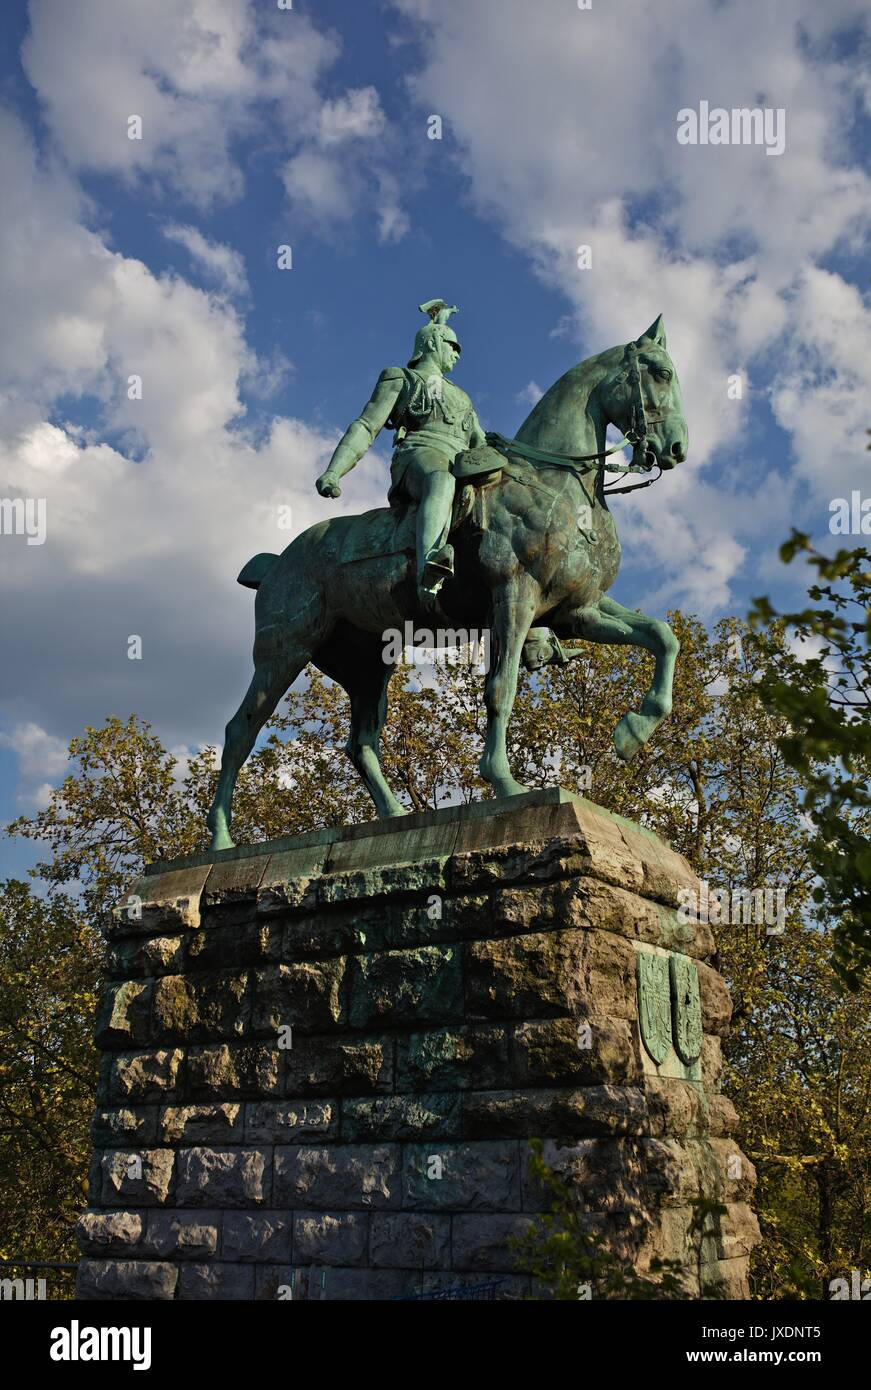 Statue of Emporer Wilhelm II on left bank of river Rhine and the south side of the Hohenzollern railway bridge in Cologne, Germany - Stock Image